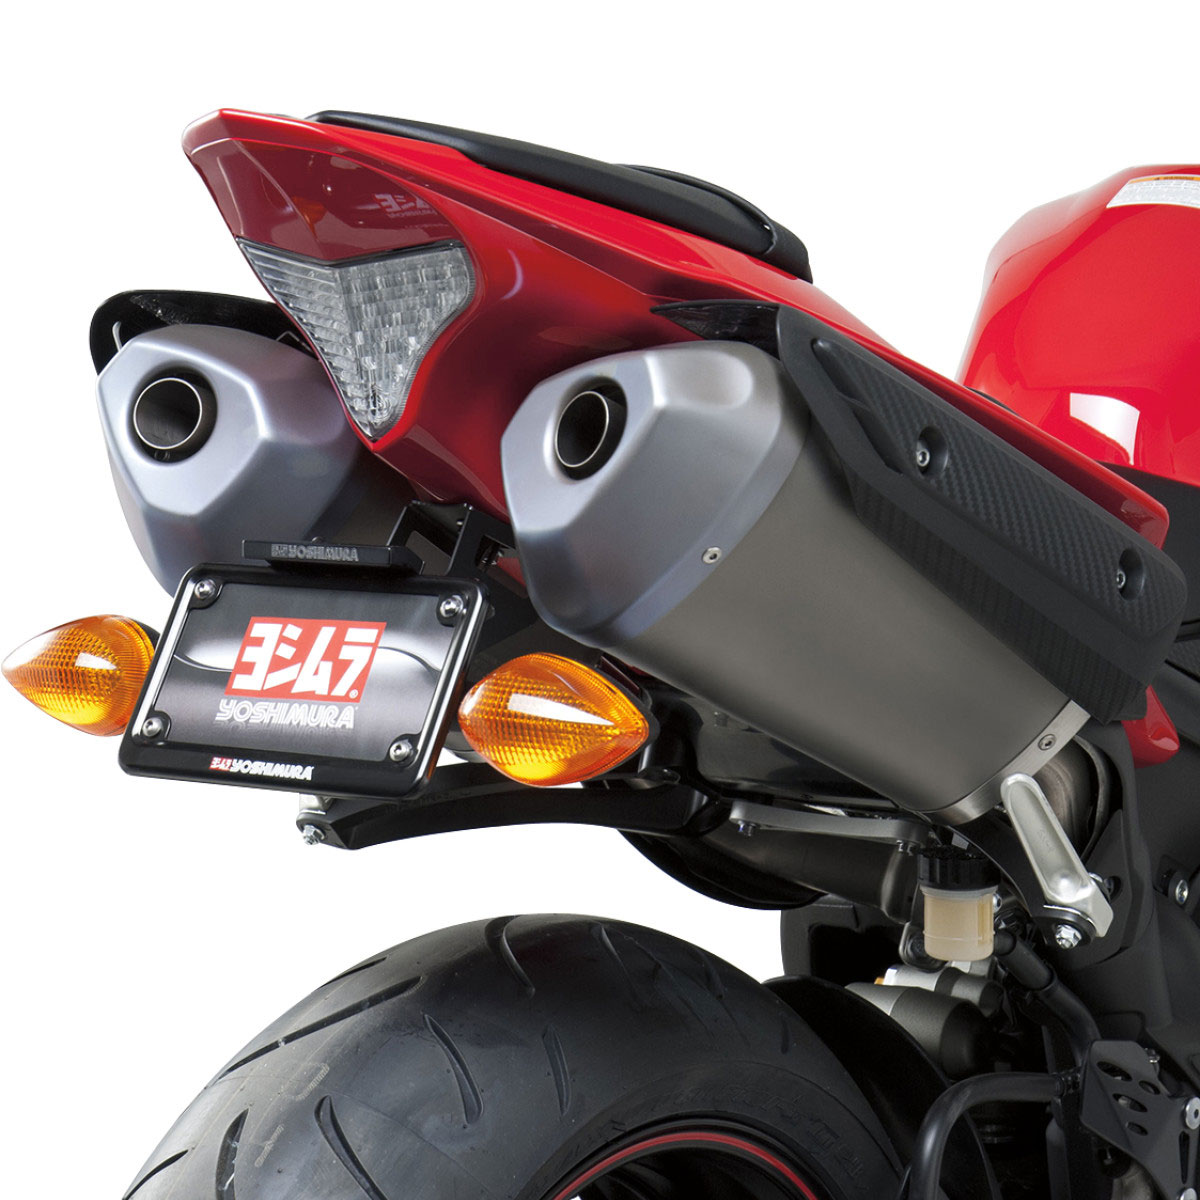 Yamaha LED taillight BUILT IN for YZF R 1 2009 2010 2011 2012 2013 2014 09-14